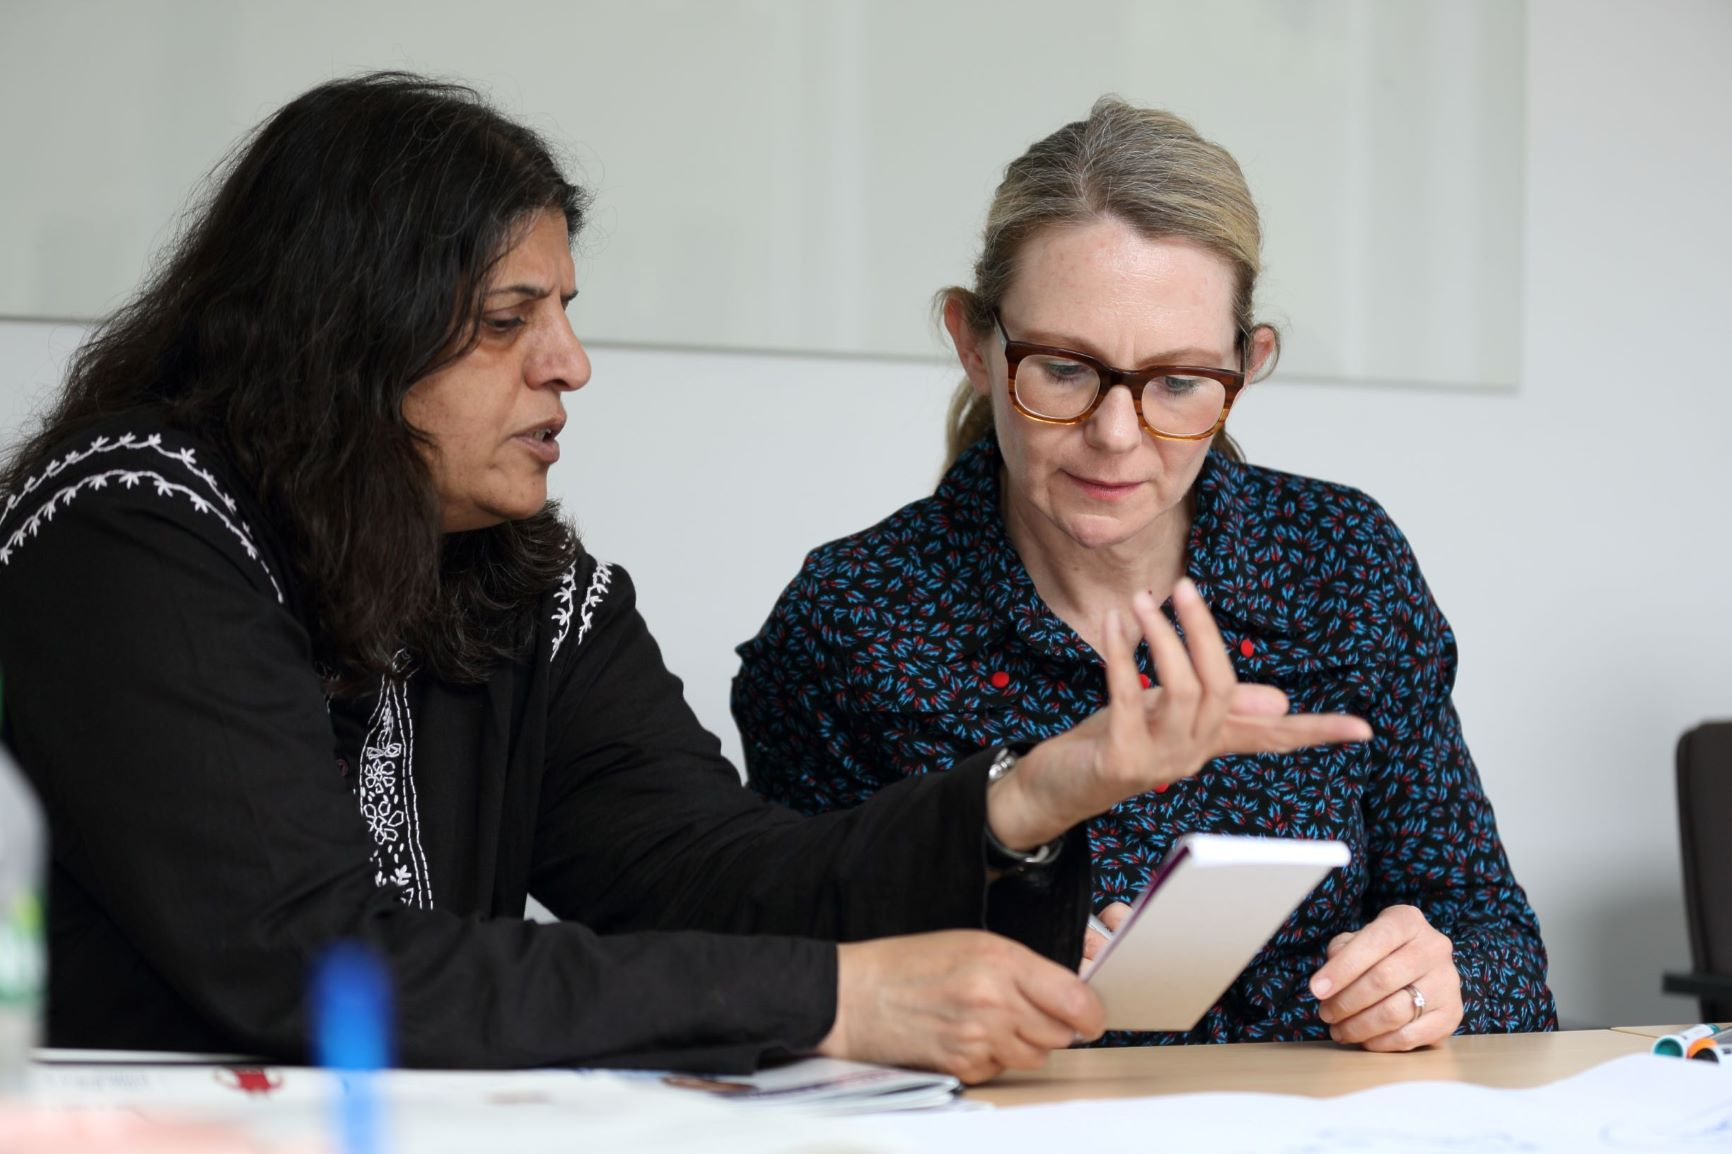 Two women looking at a notepad and having a discussion.